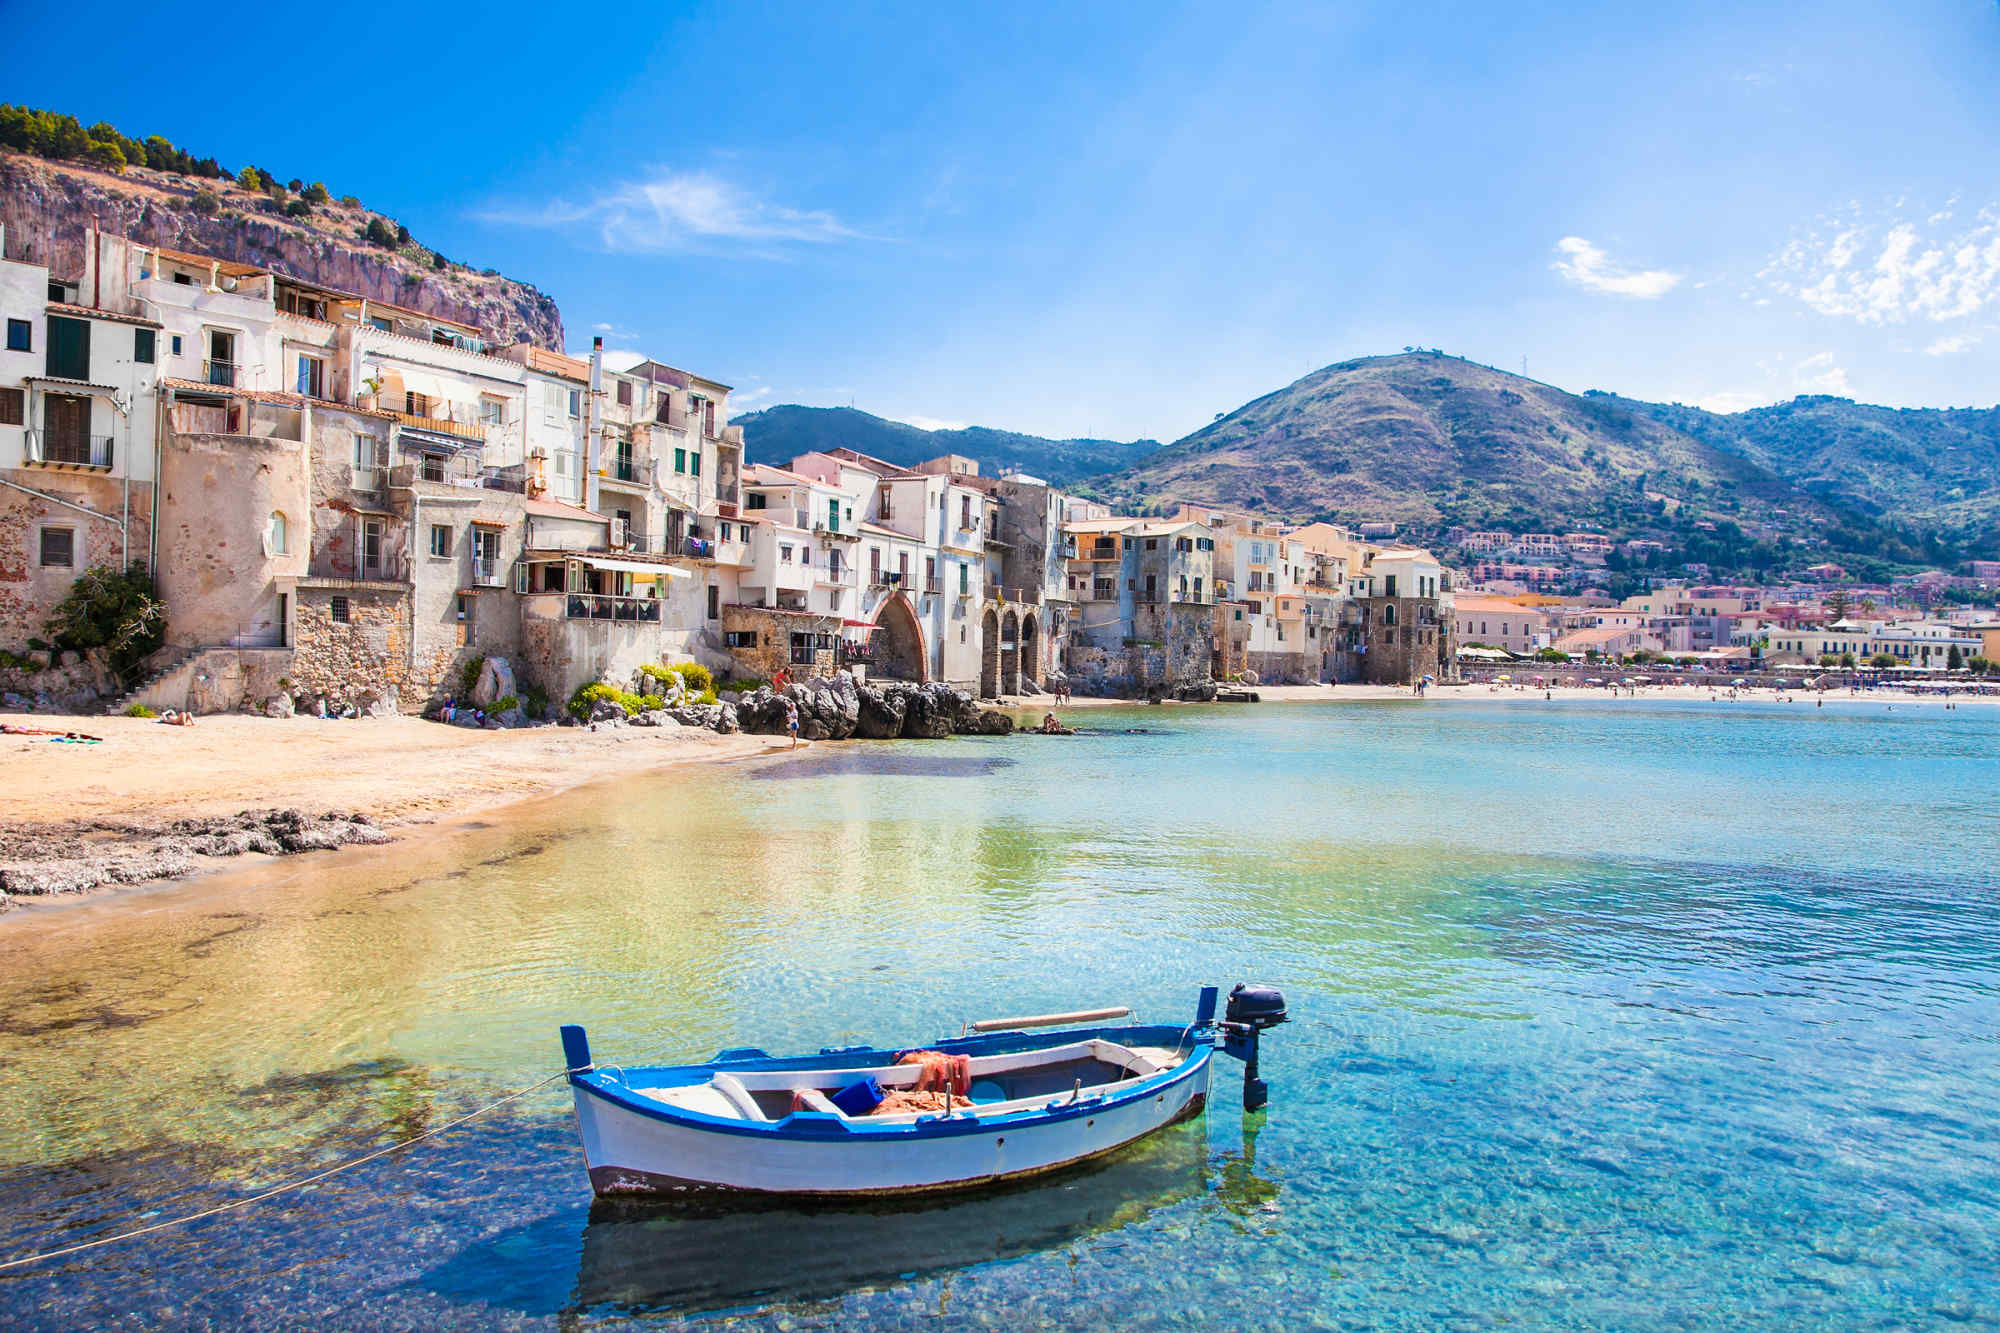 Travel to Sicily in Italy